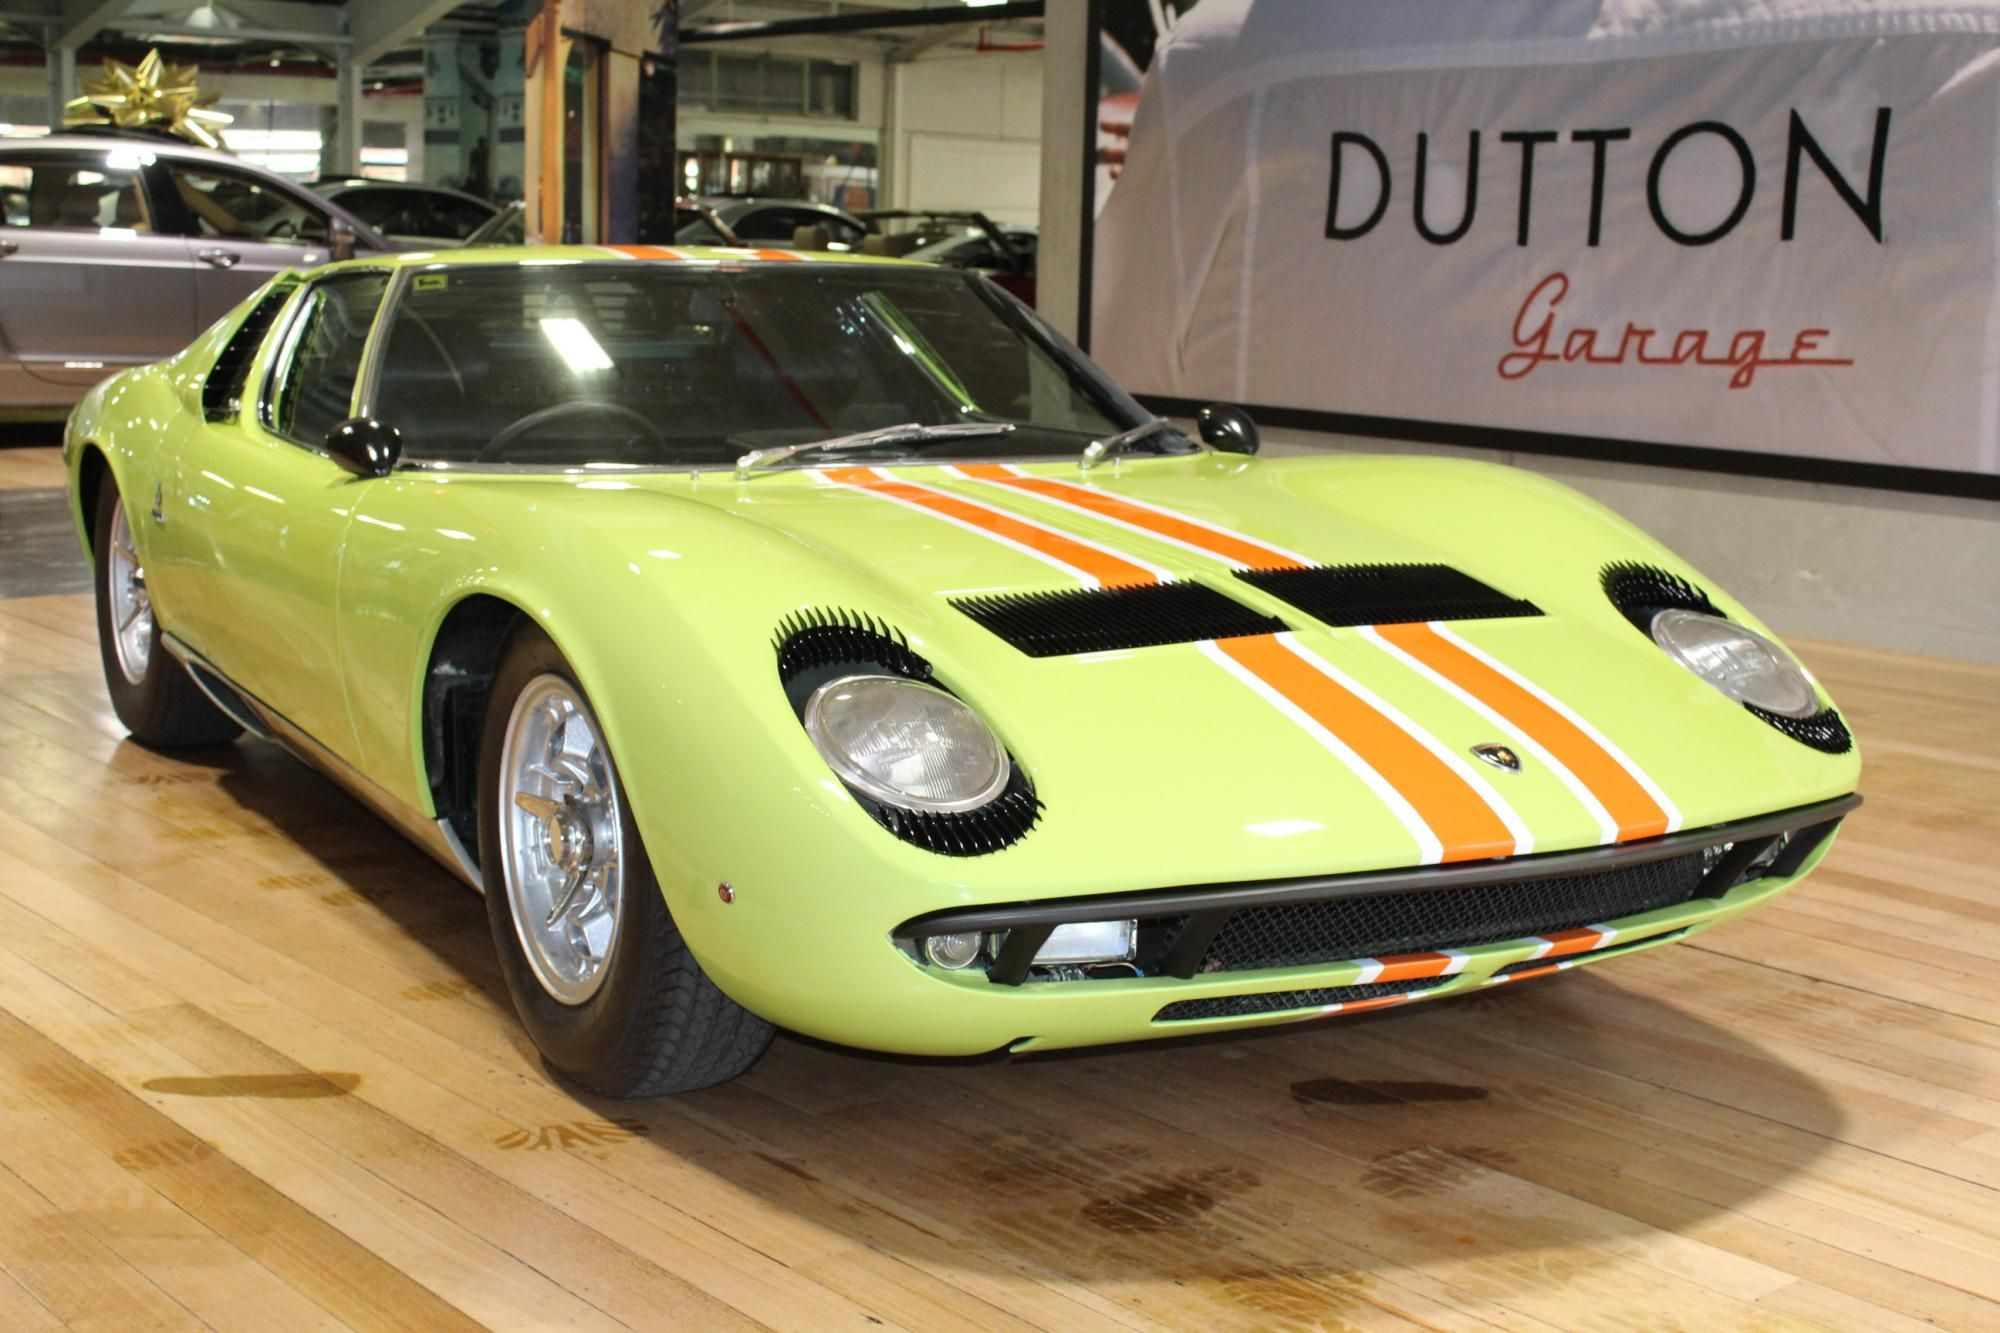 Lamborghini Miura S Owned By Supermodel Twiggy Back In 1969 Icons